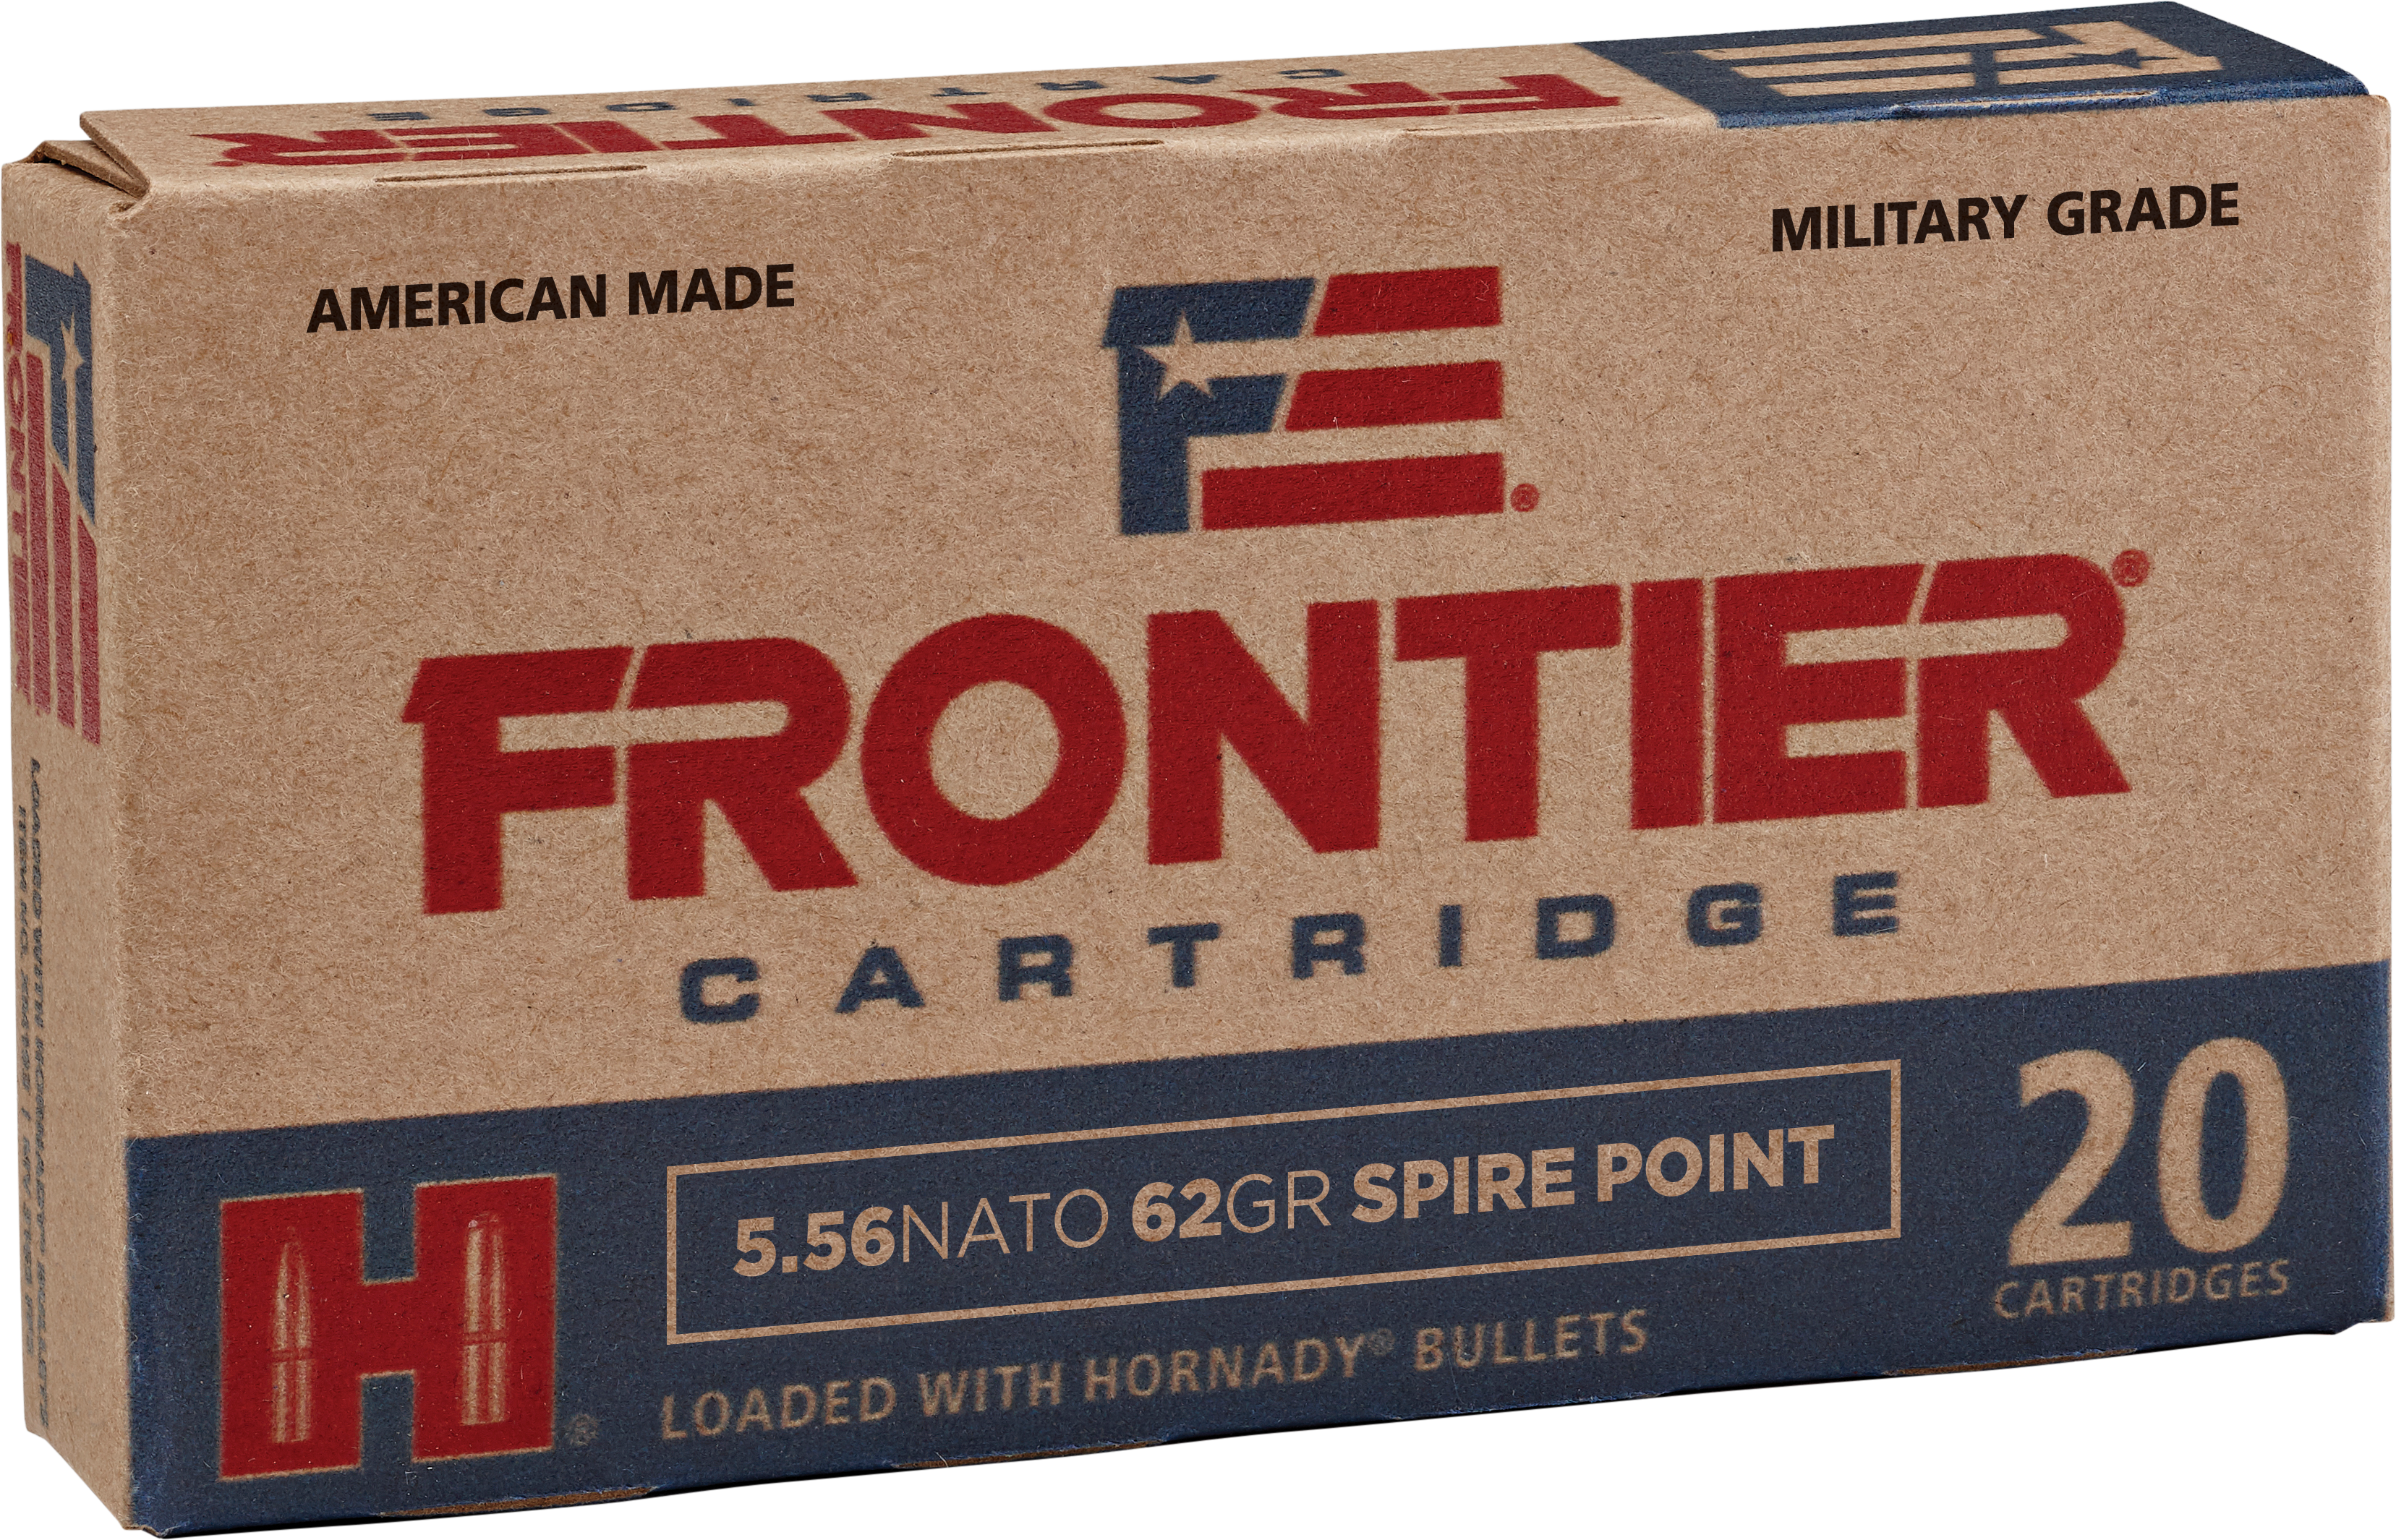 Frontier Cartridge Military Grade Ammunition 5.56x45mm NATO 62GR Hornady Spire Point Per 20